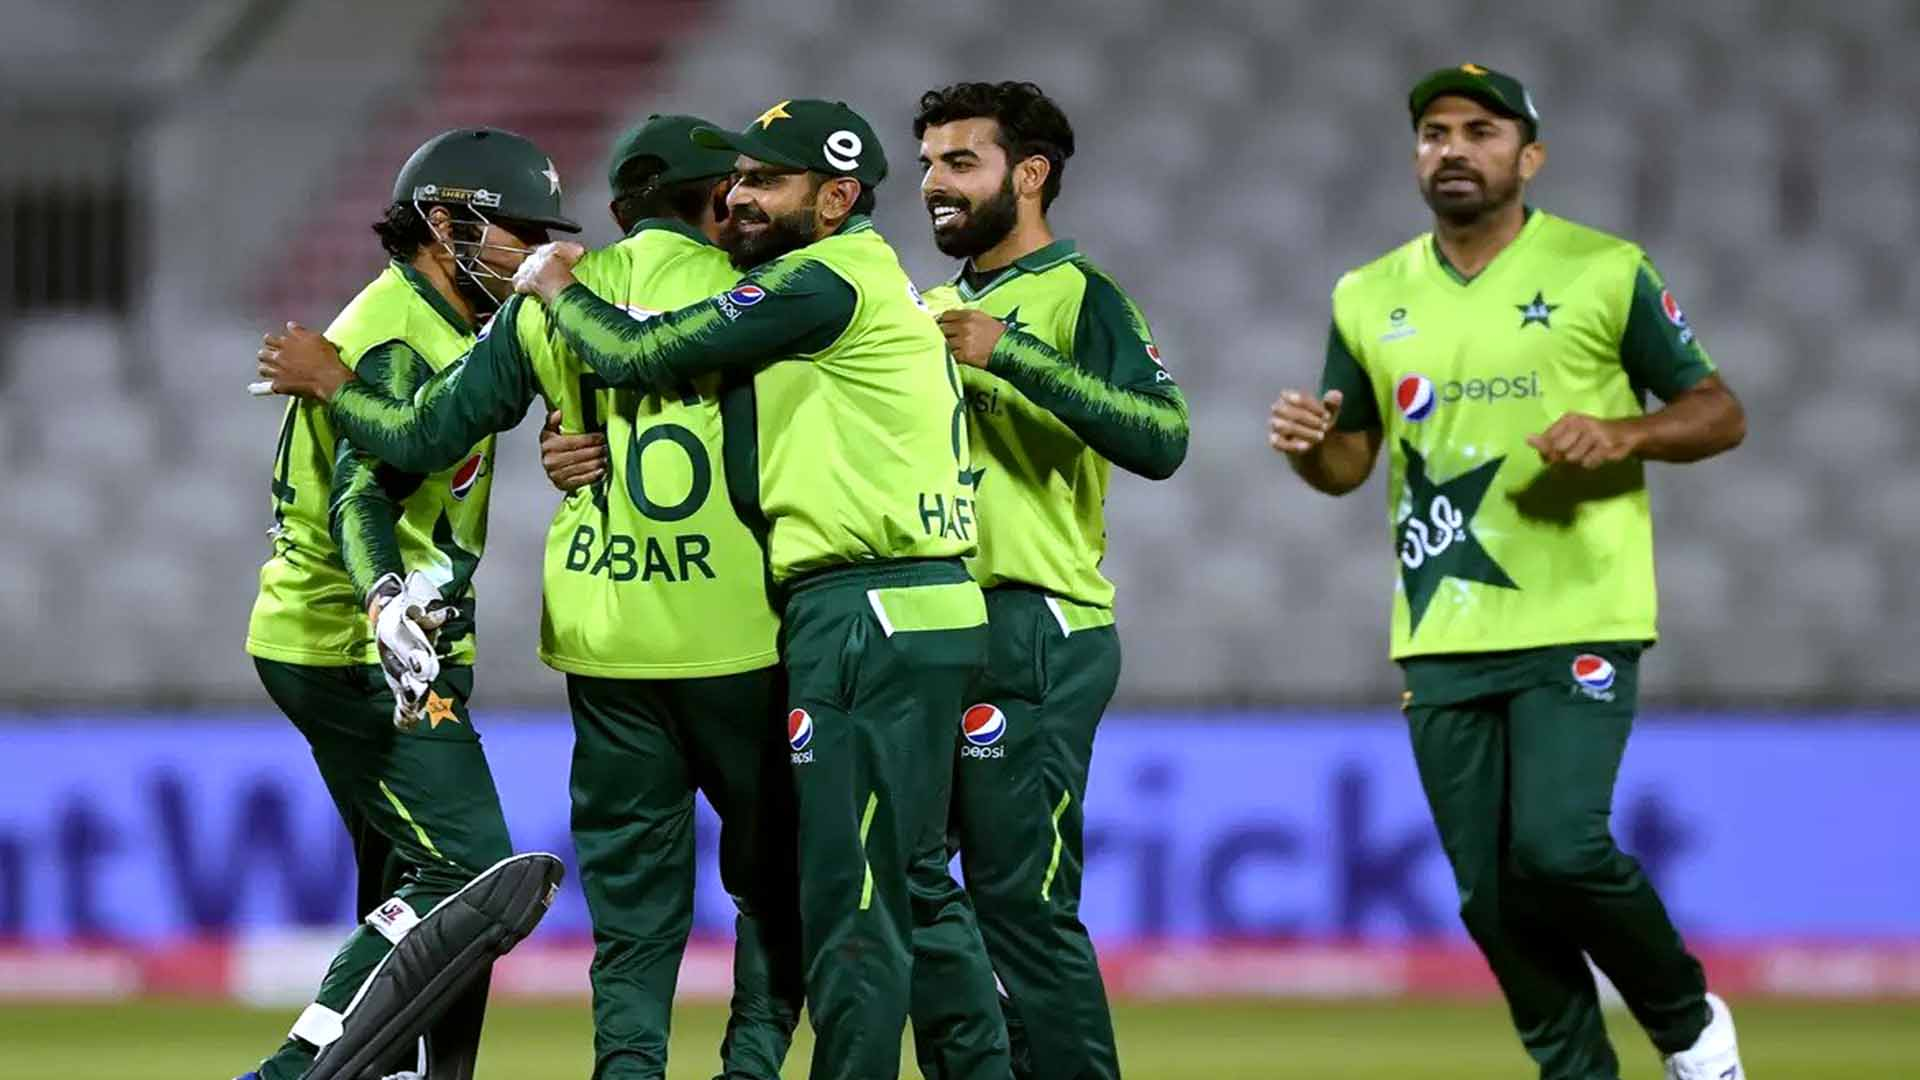 Pakistan's team announced for their first match of ICC CWC Super League